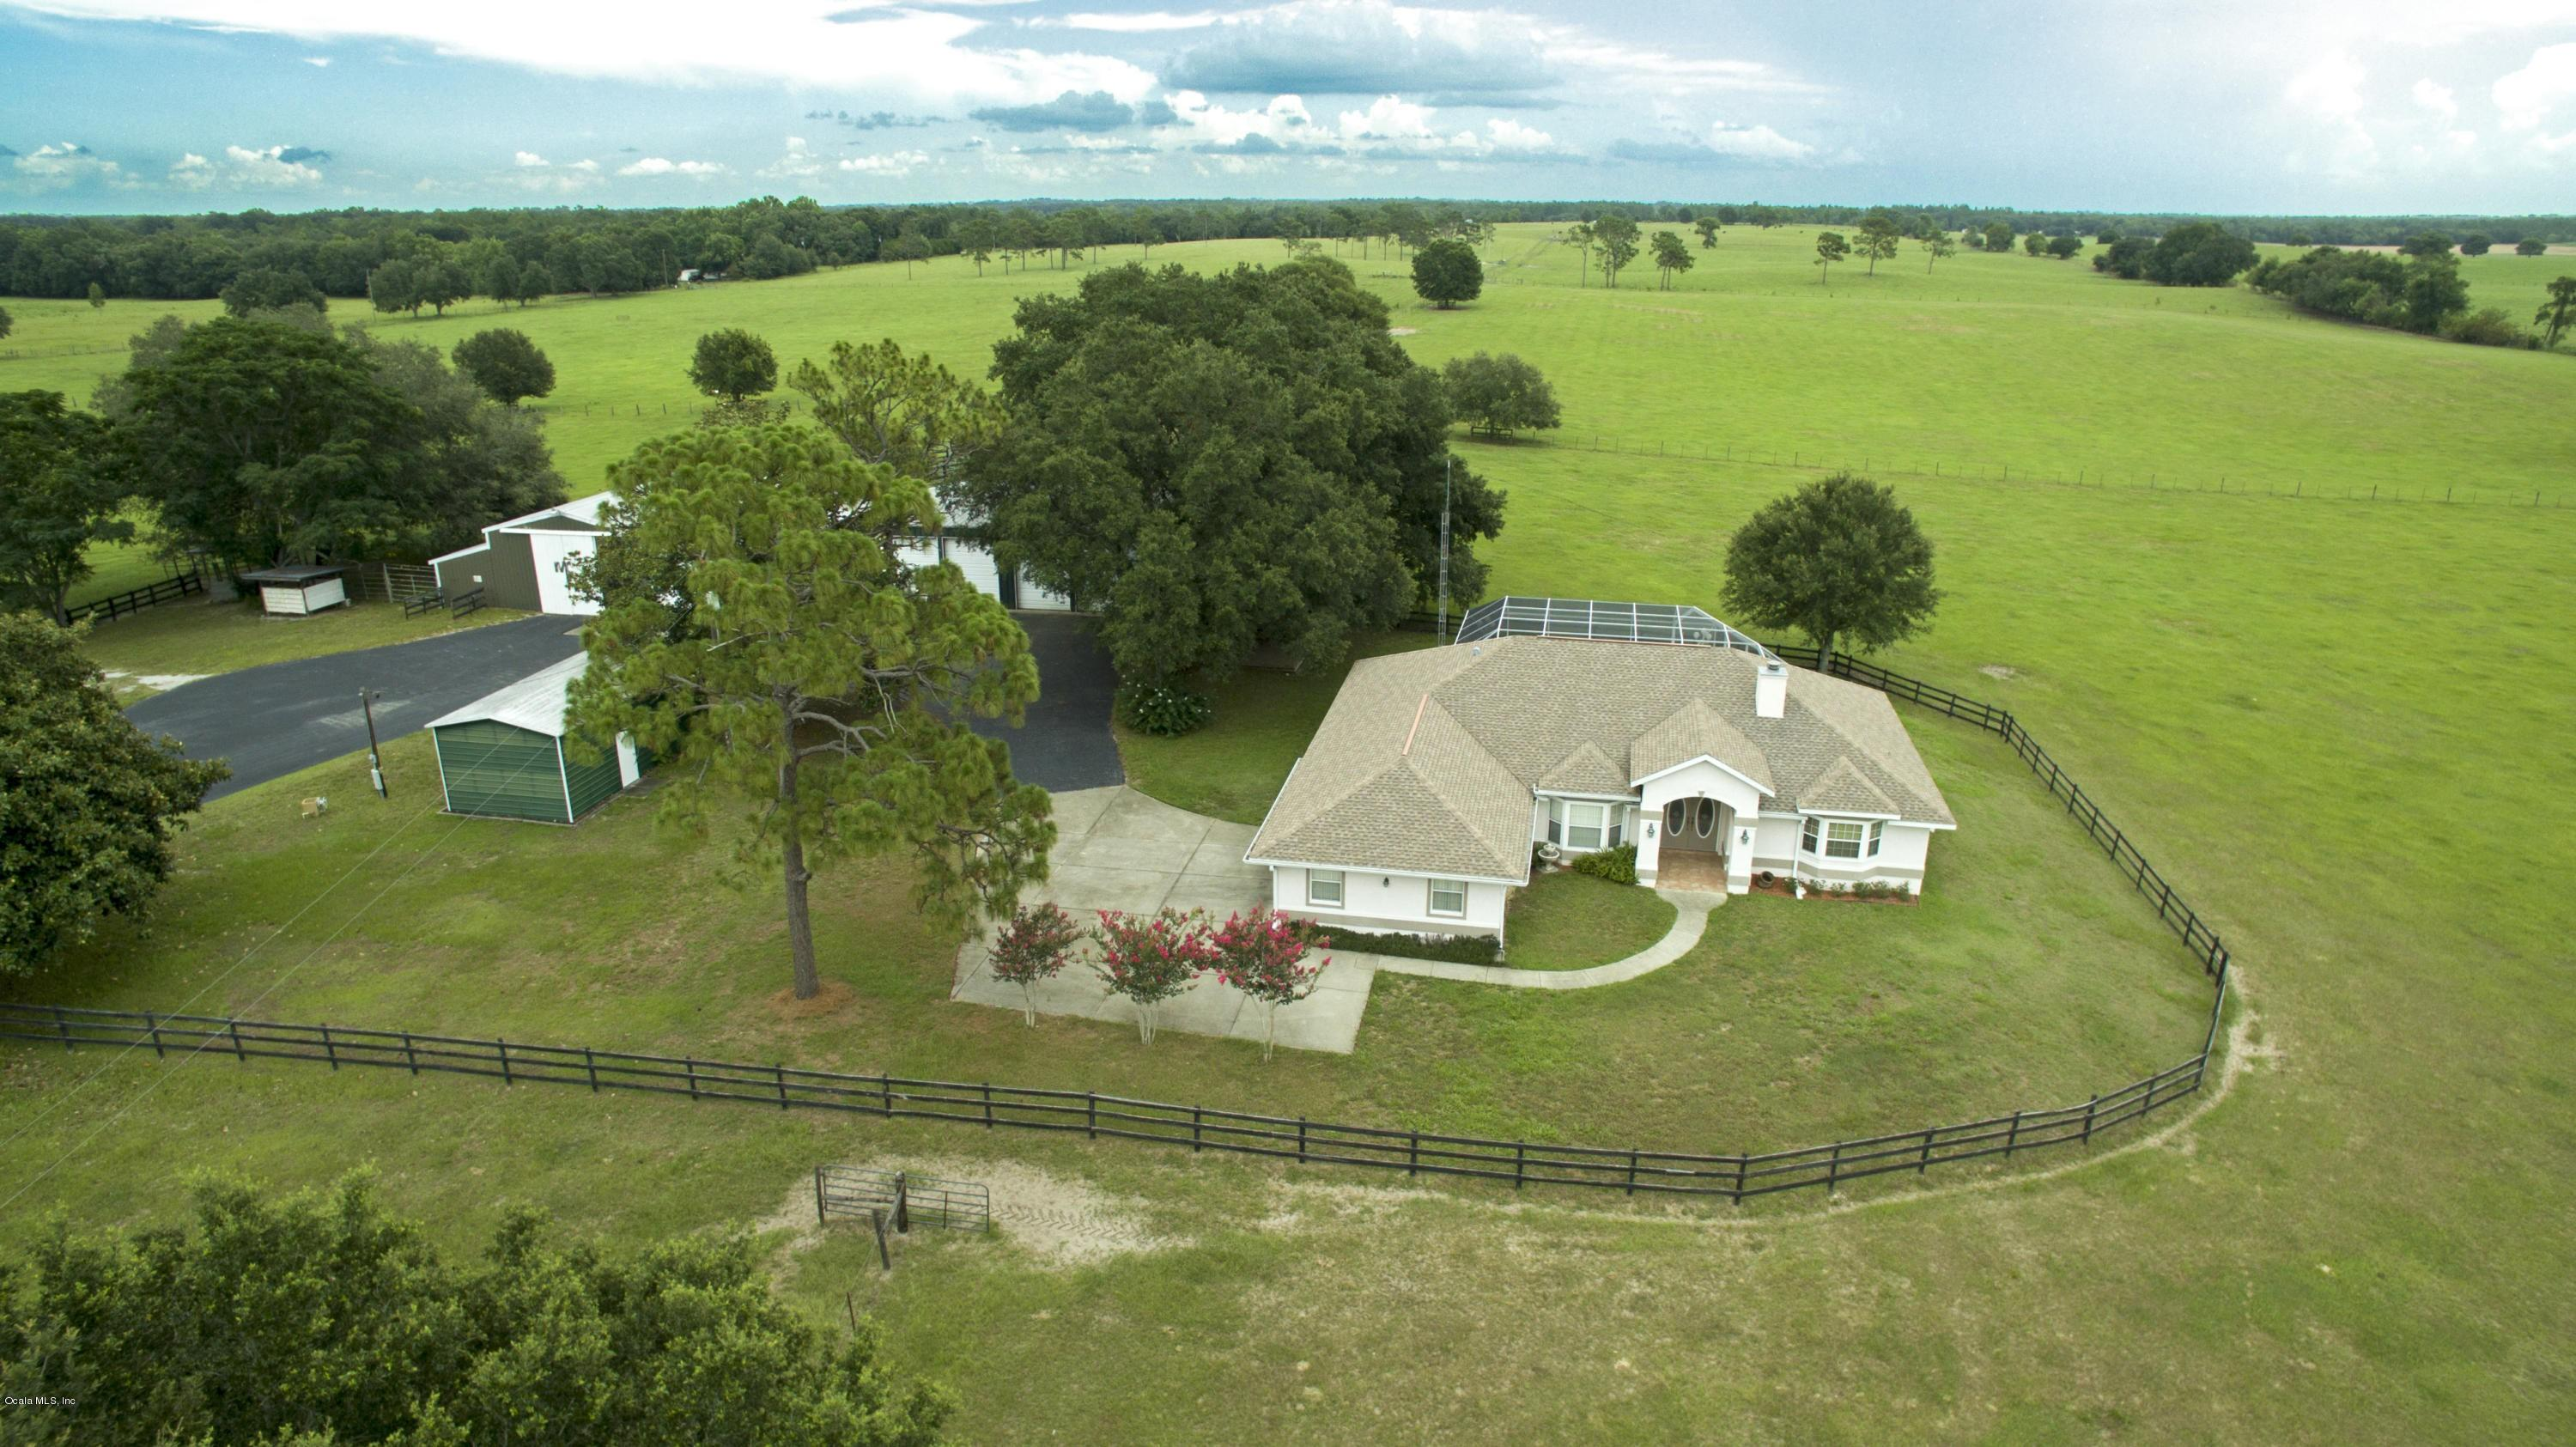 Image of Acreage w/House for Sale near Morriston, Florida, in Levy County: 110 acres